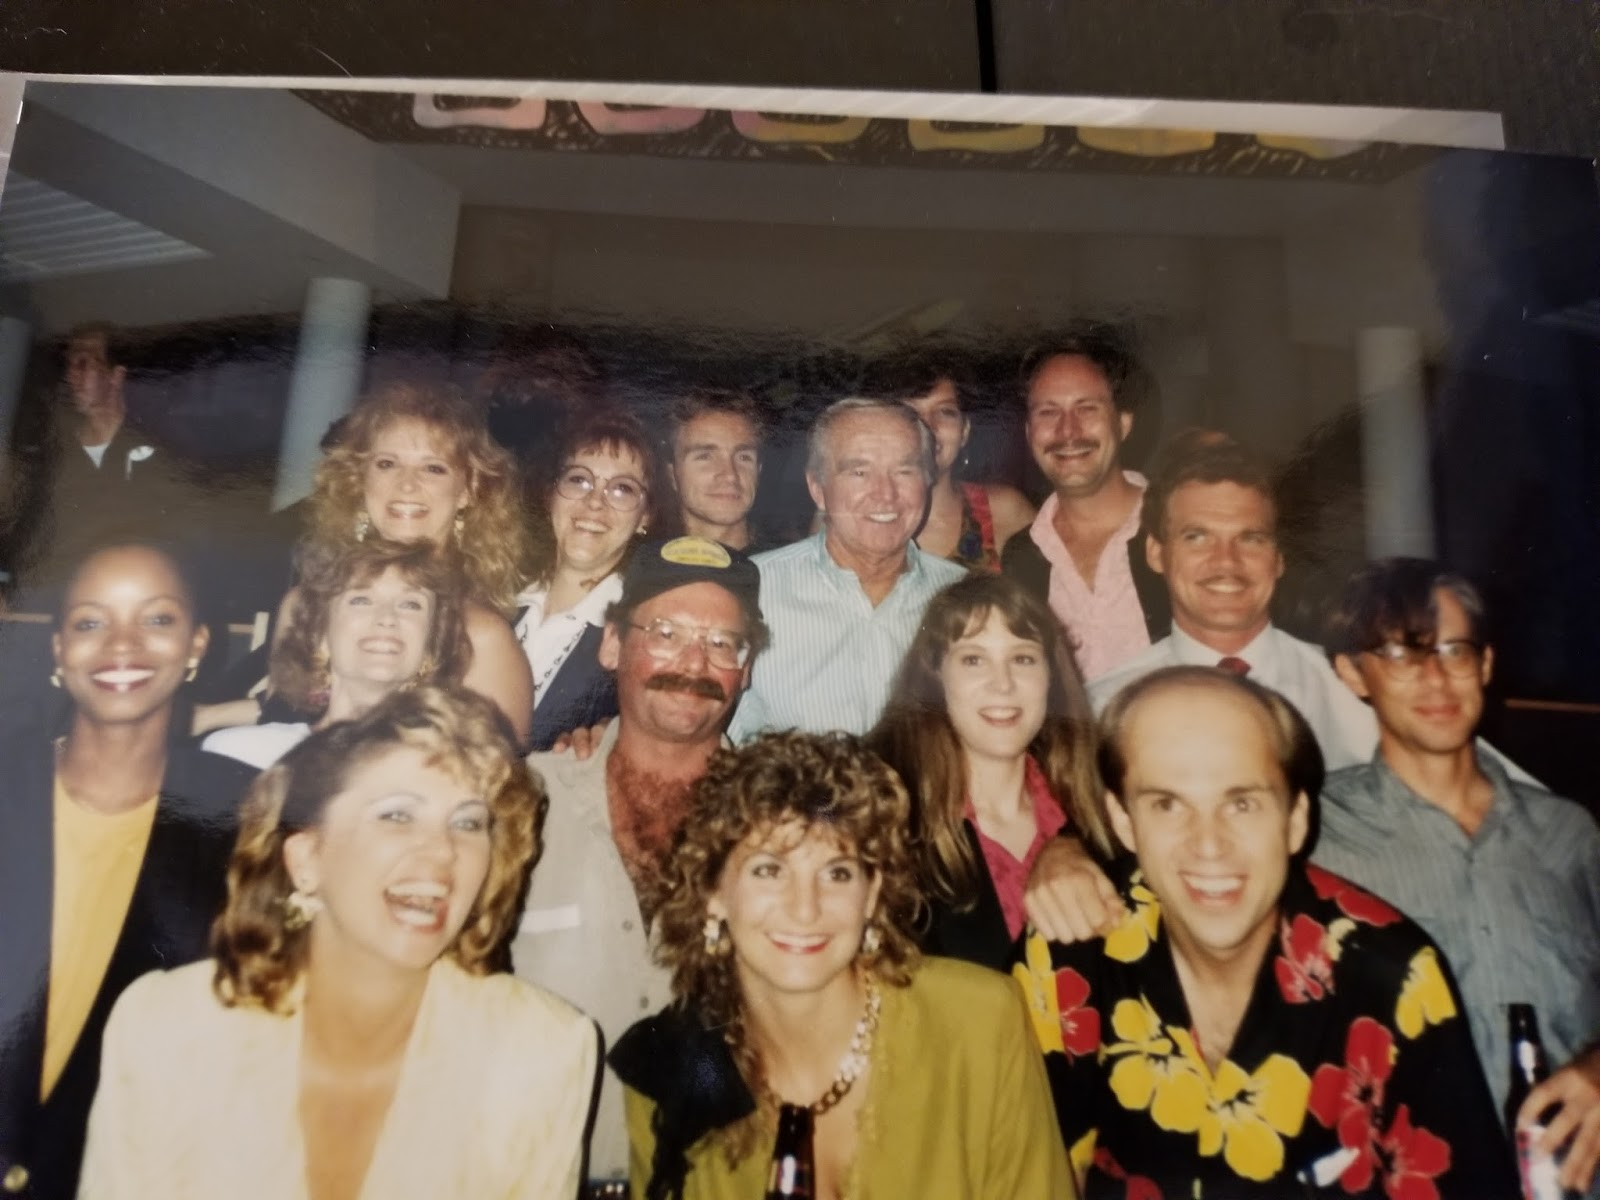 divorce court wrap party glenda 2nd to the left middle row judge keene 4th left top row dan parson top row far right 1991